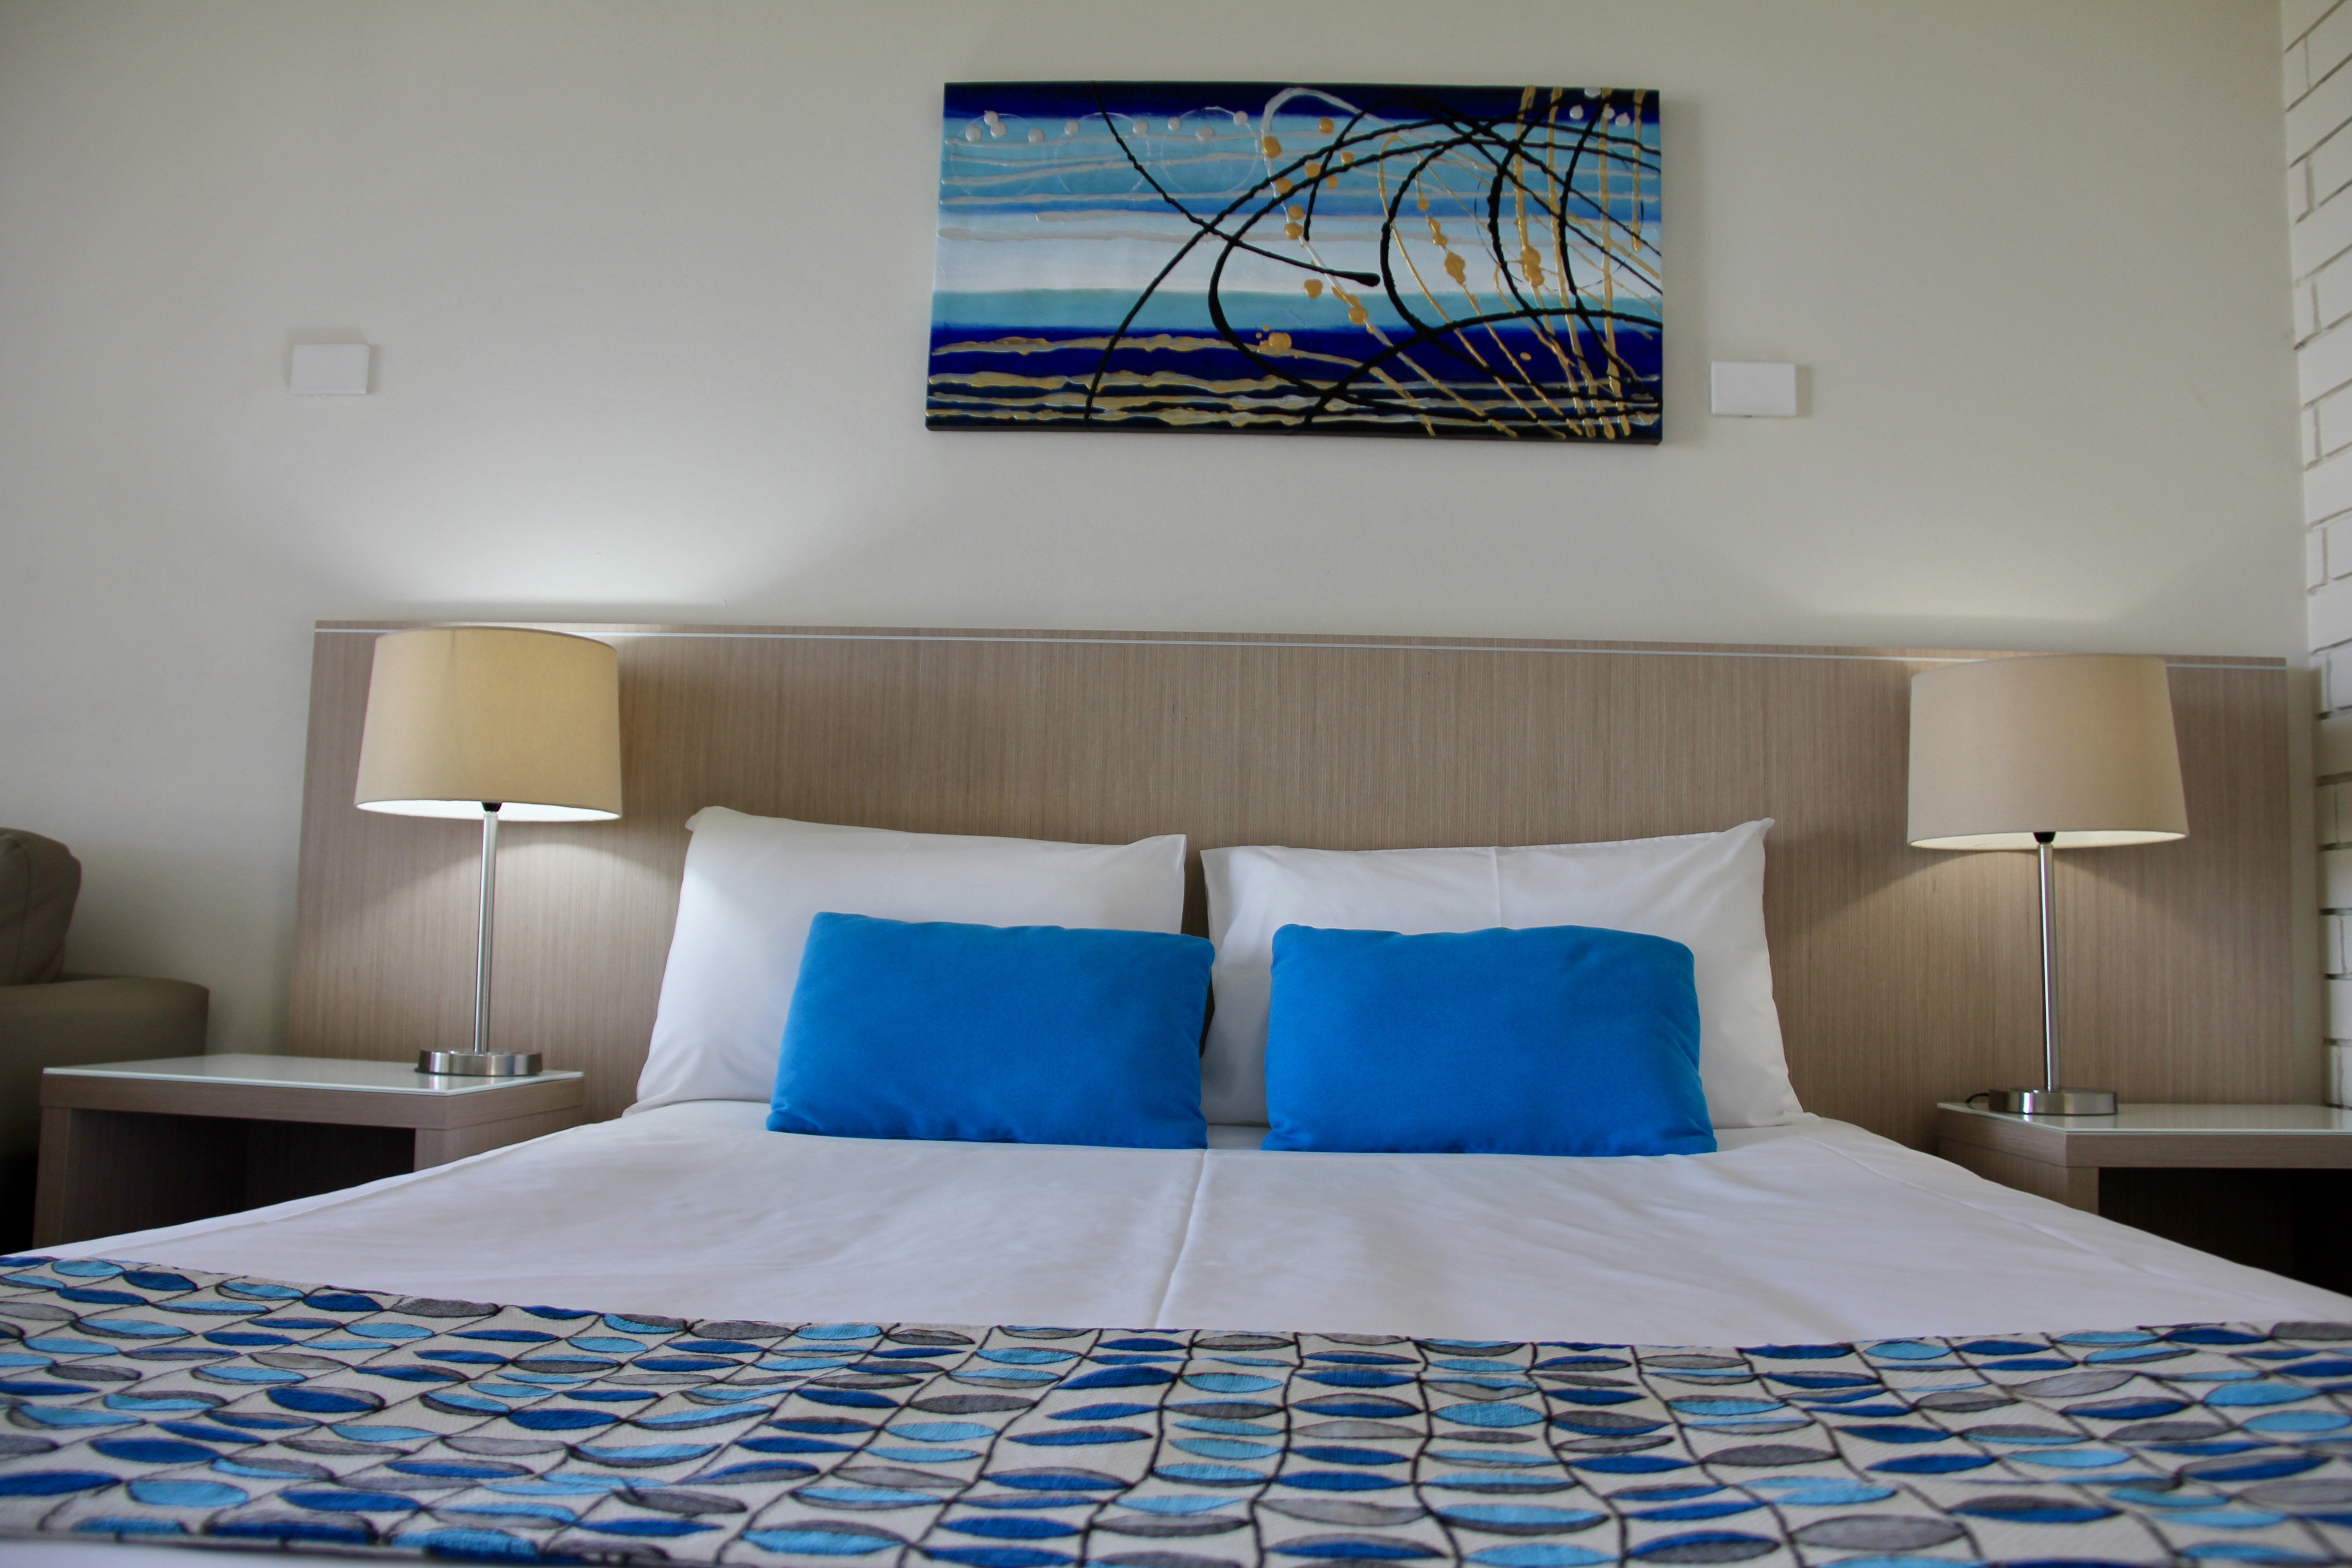 2 Bedroom Accommodation Canberra Accommodation Batemans Bay Accommodation Batemans Bay